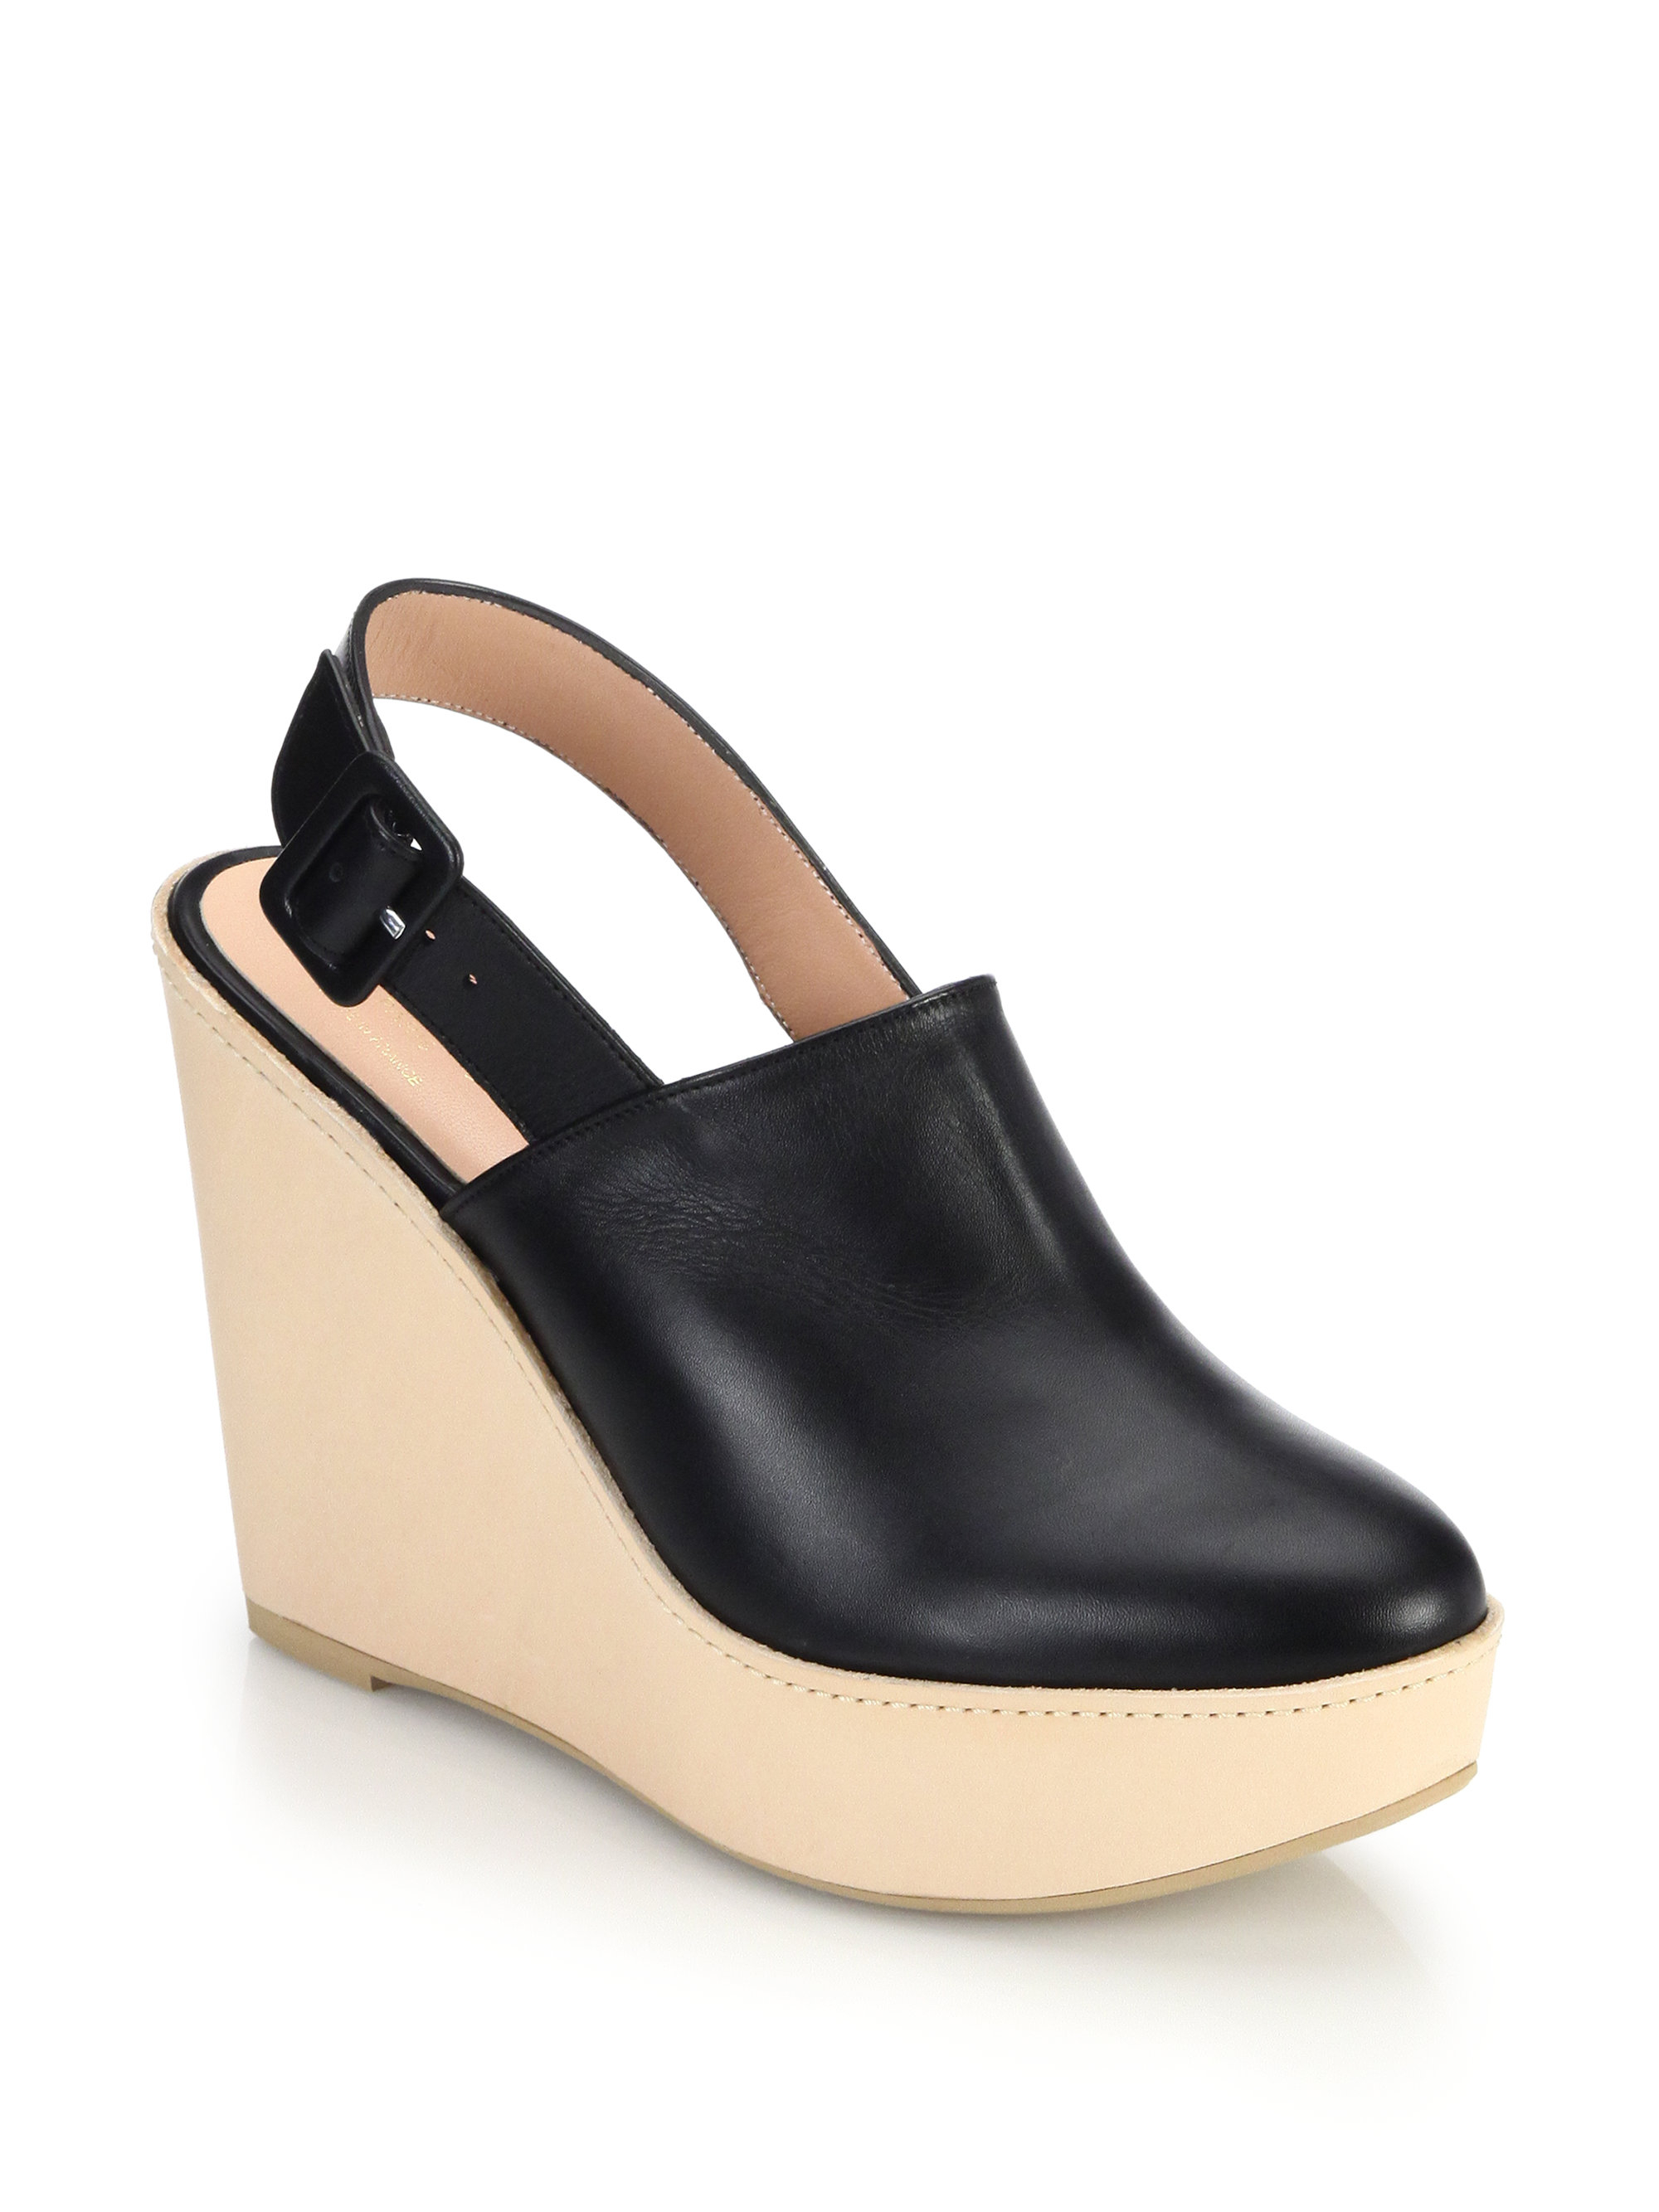 Black Wooden Platform Shoes